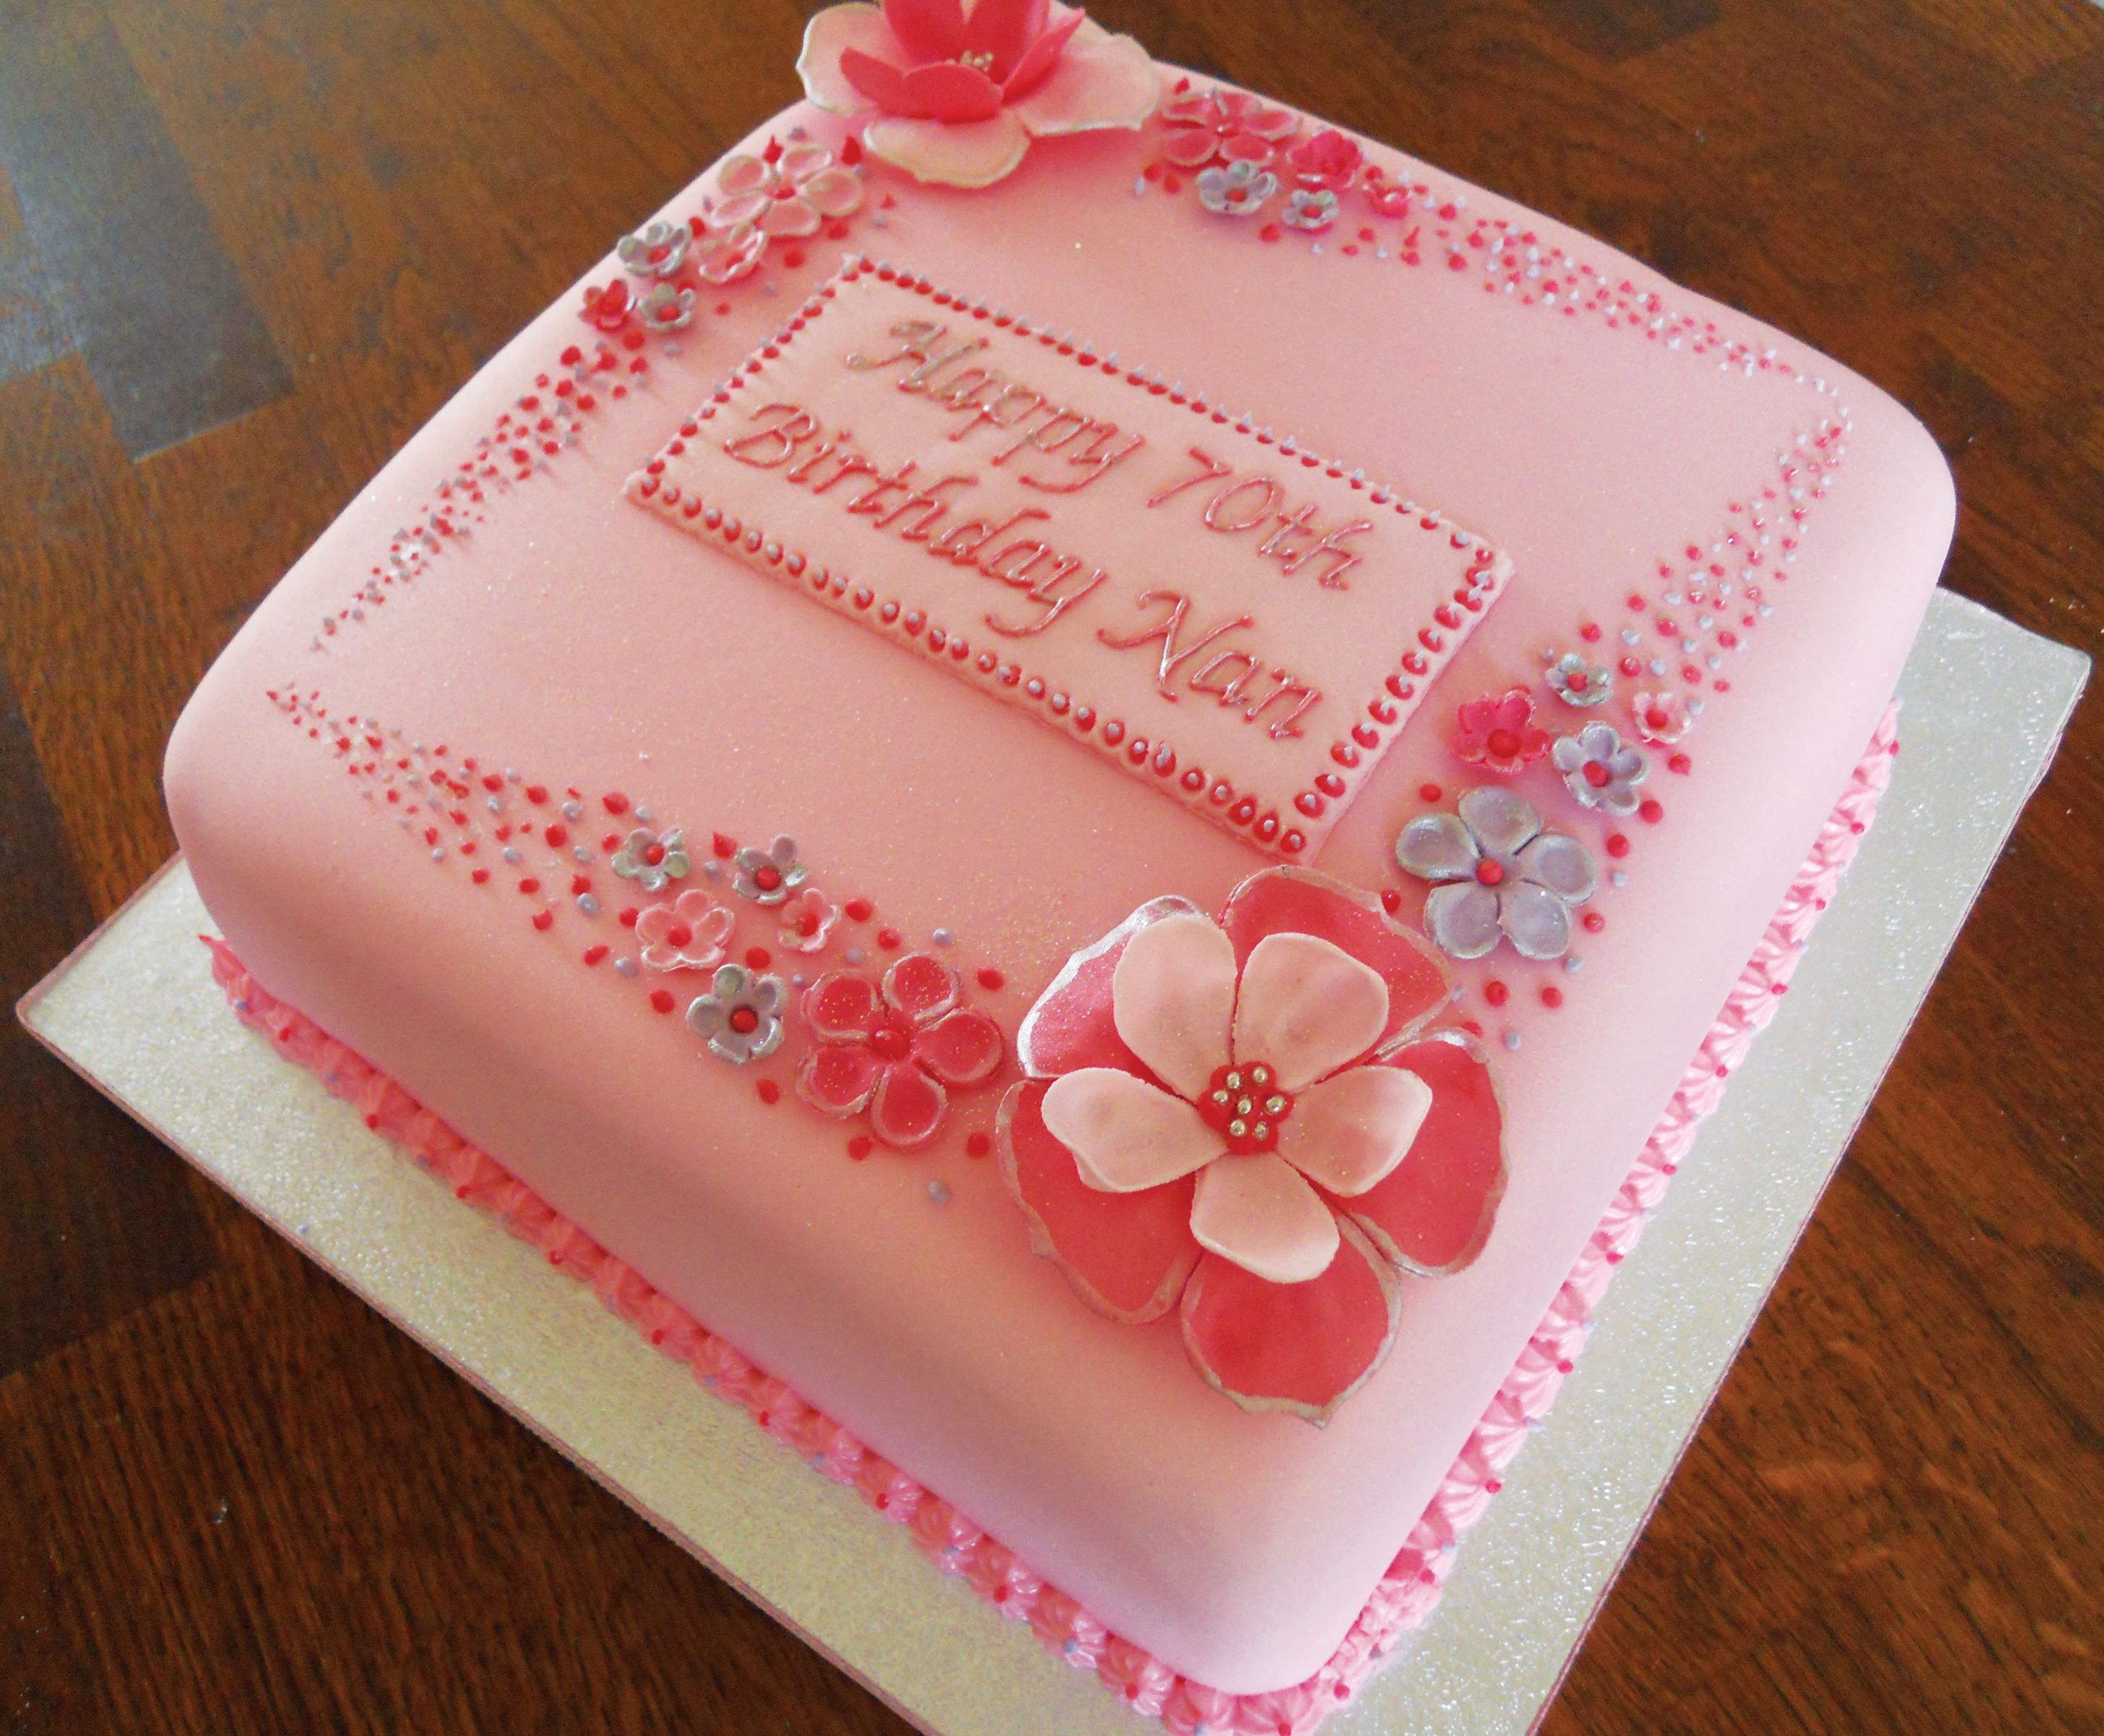 Pink Flowery 70th Birthday Cake 75th birthday cakes 70th